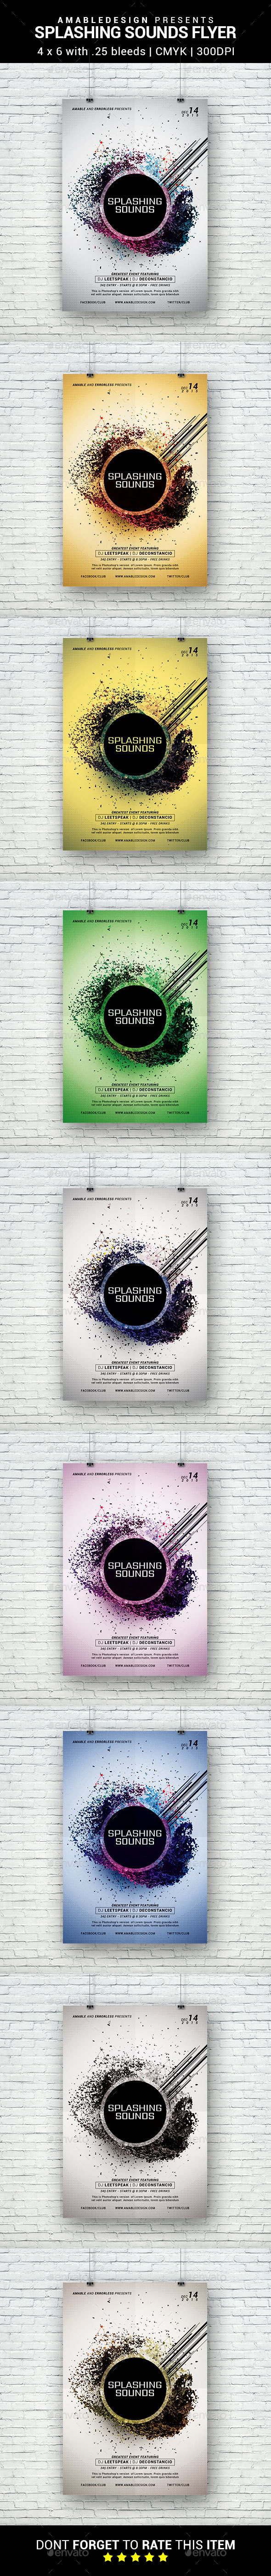 Splashing Sounds Flyer - Clubs & Parties Events